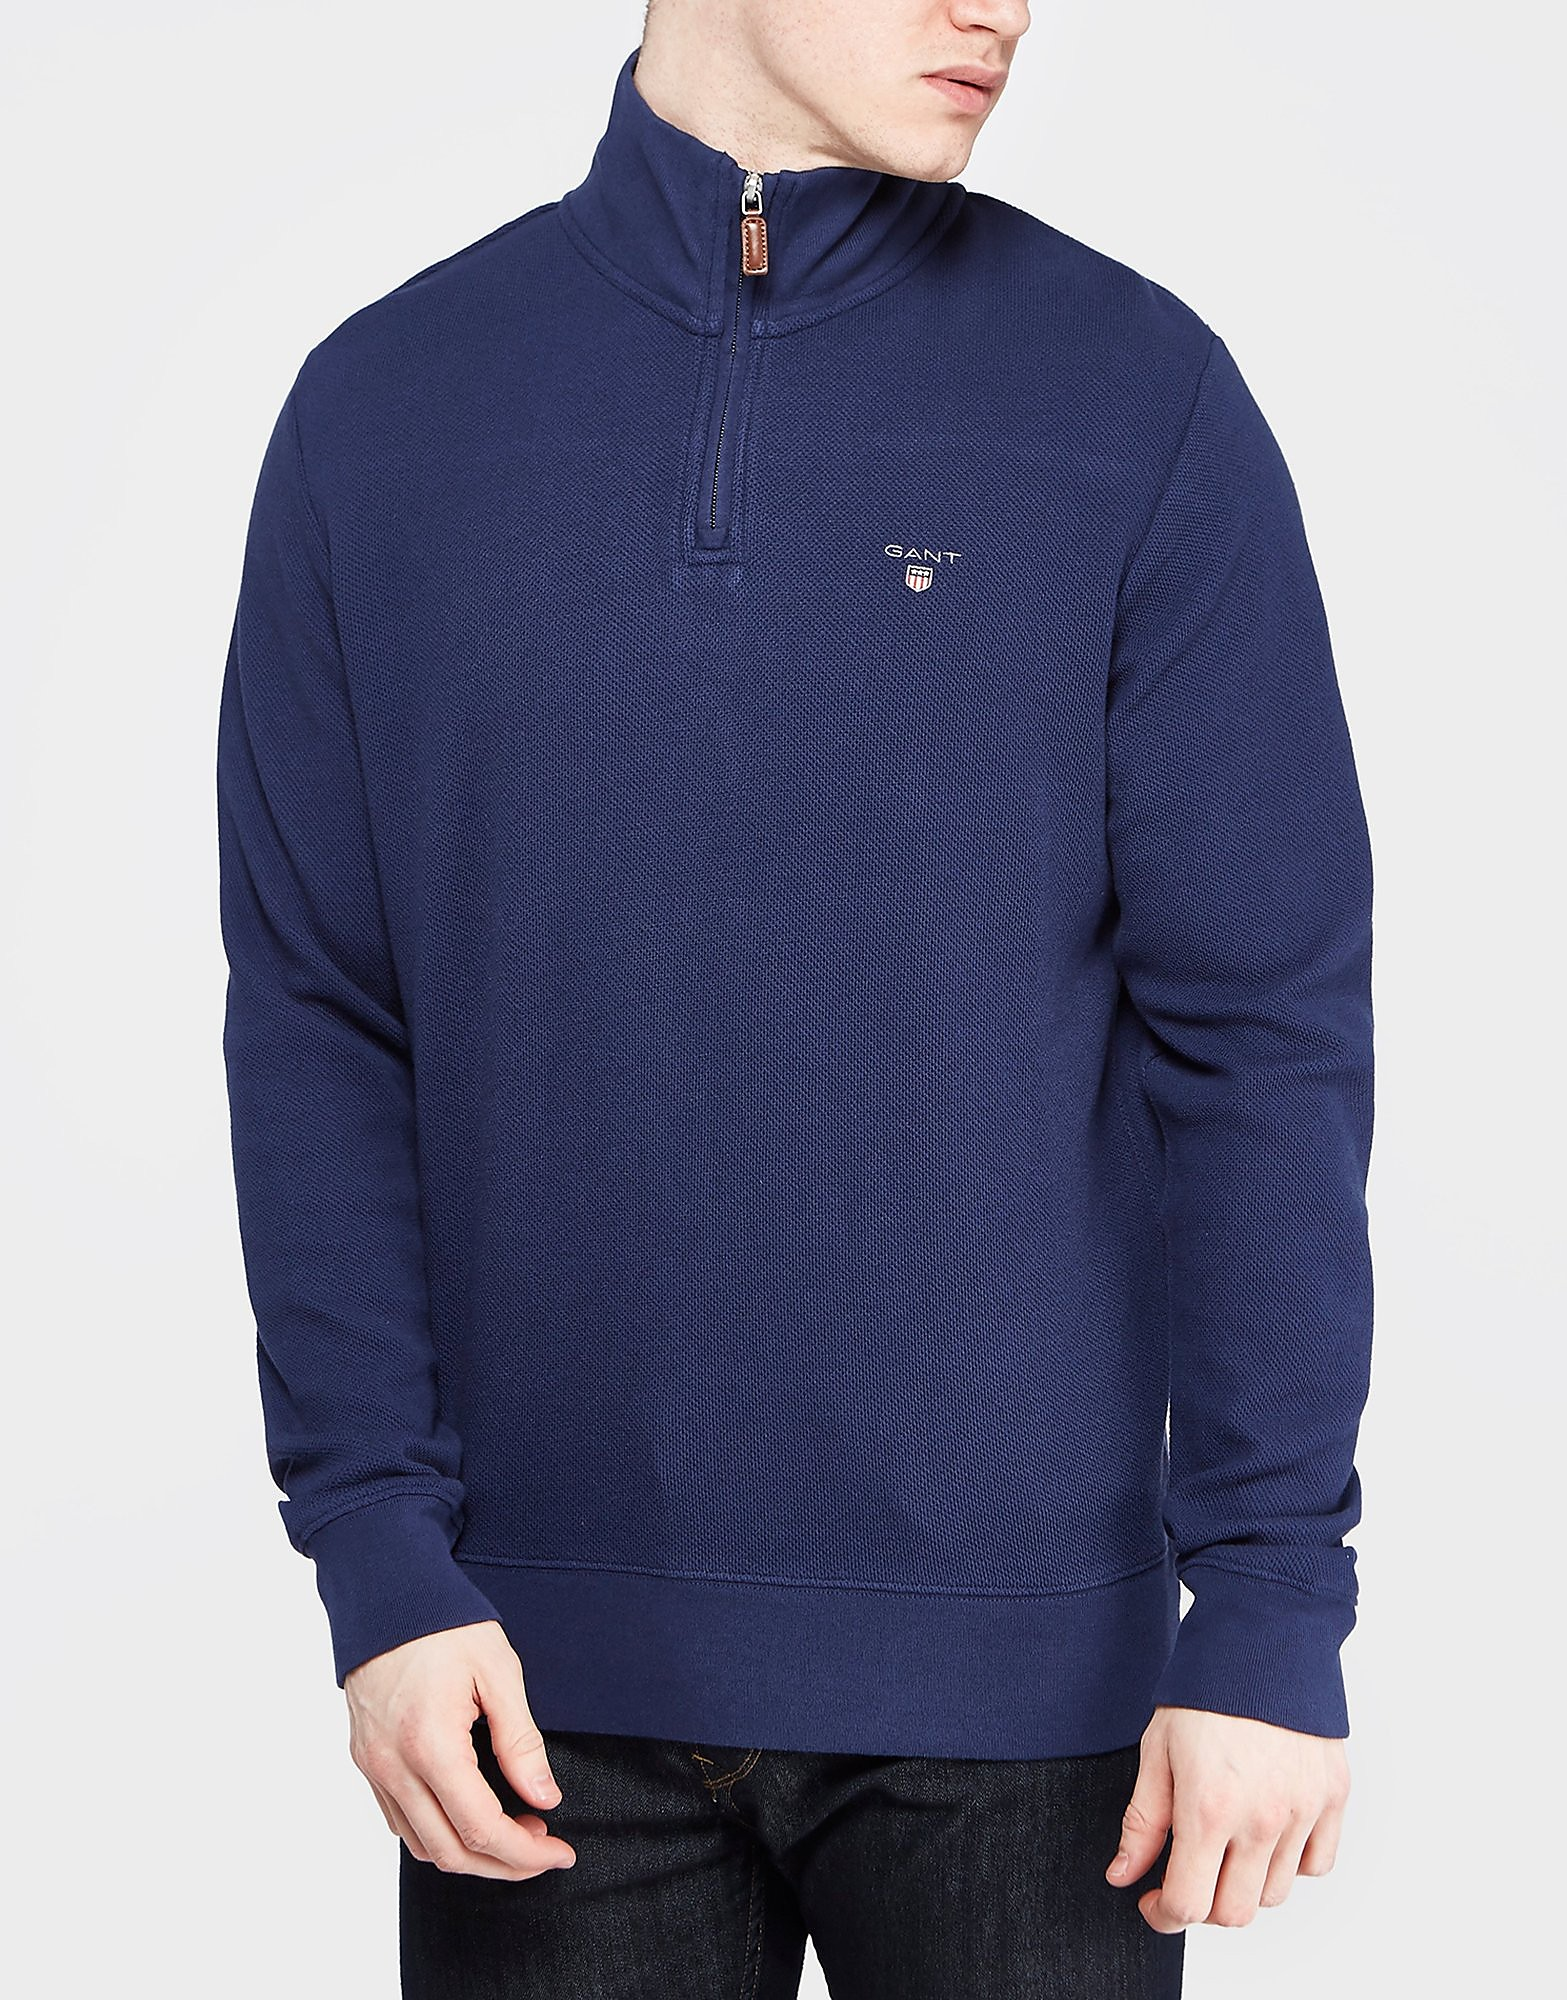 GANT Honeycomb 1/2 Zip Sweatshirt